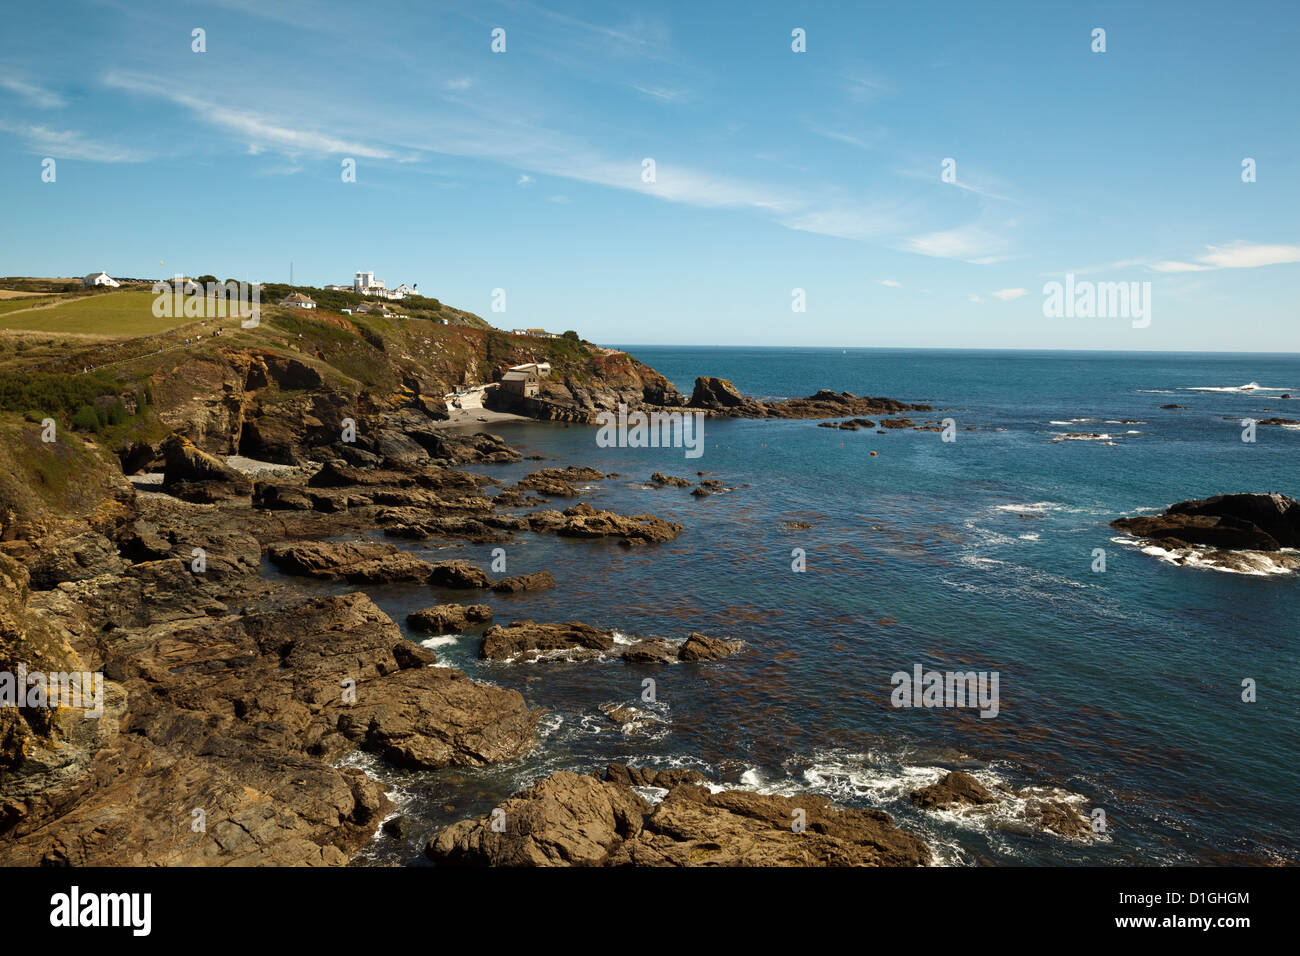 Lizard Point lighthouse and lifeboat house, the most southerly point on mainland Britain, Cornwall, England, United - Stock Image